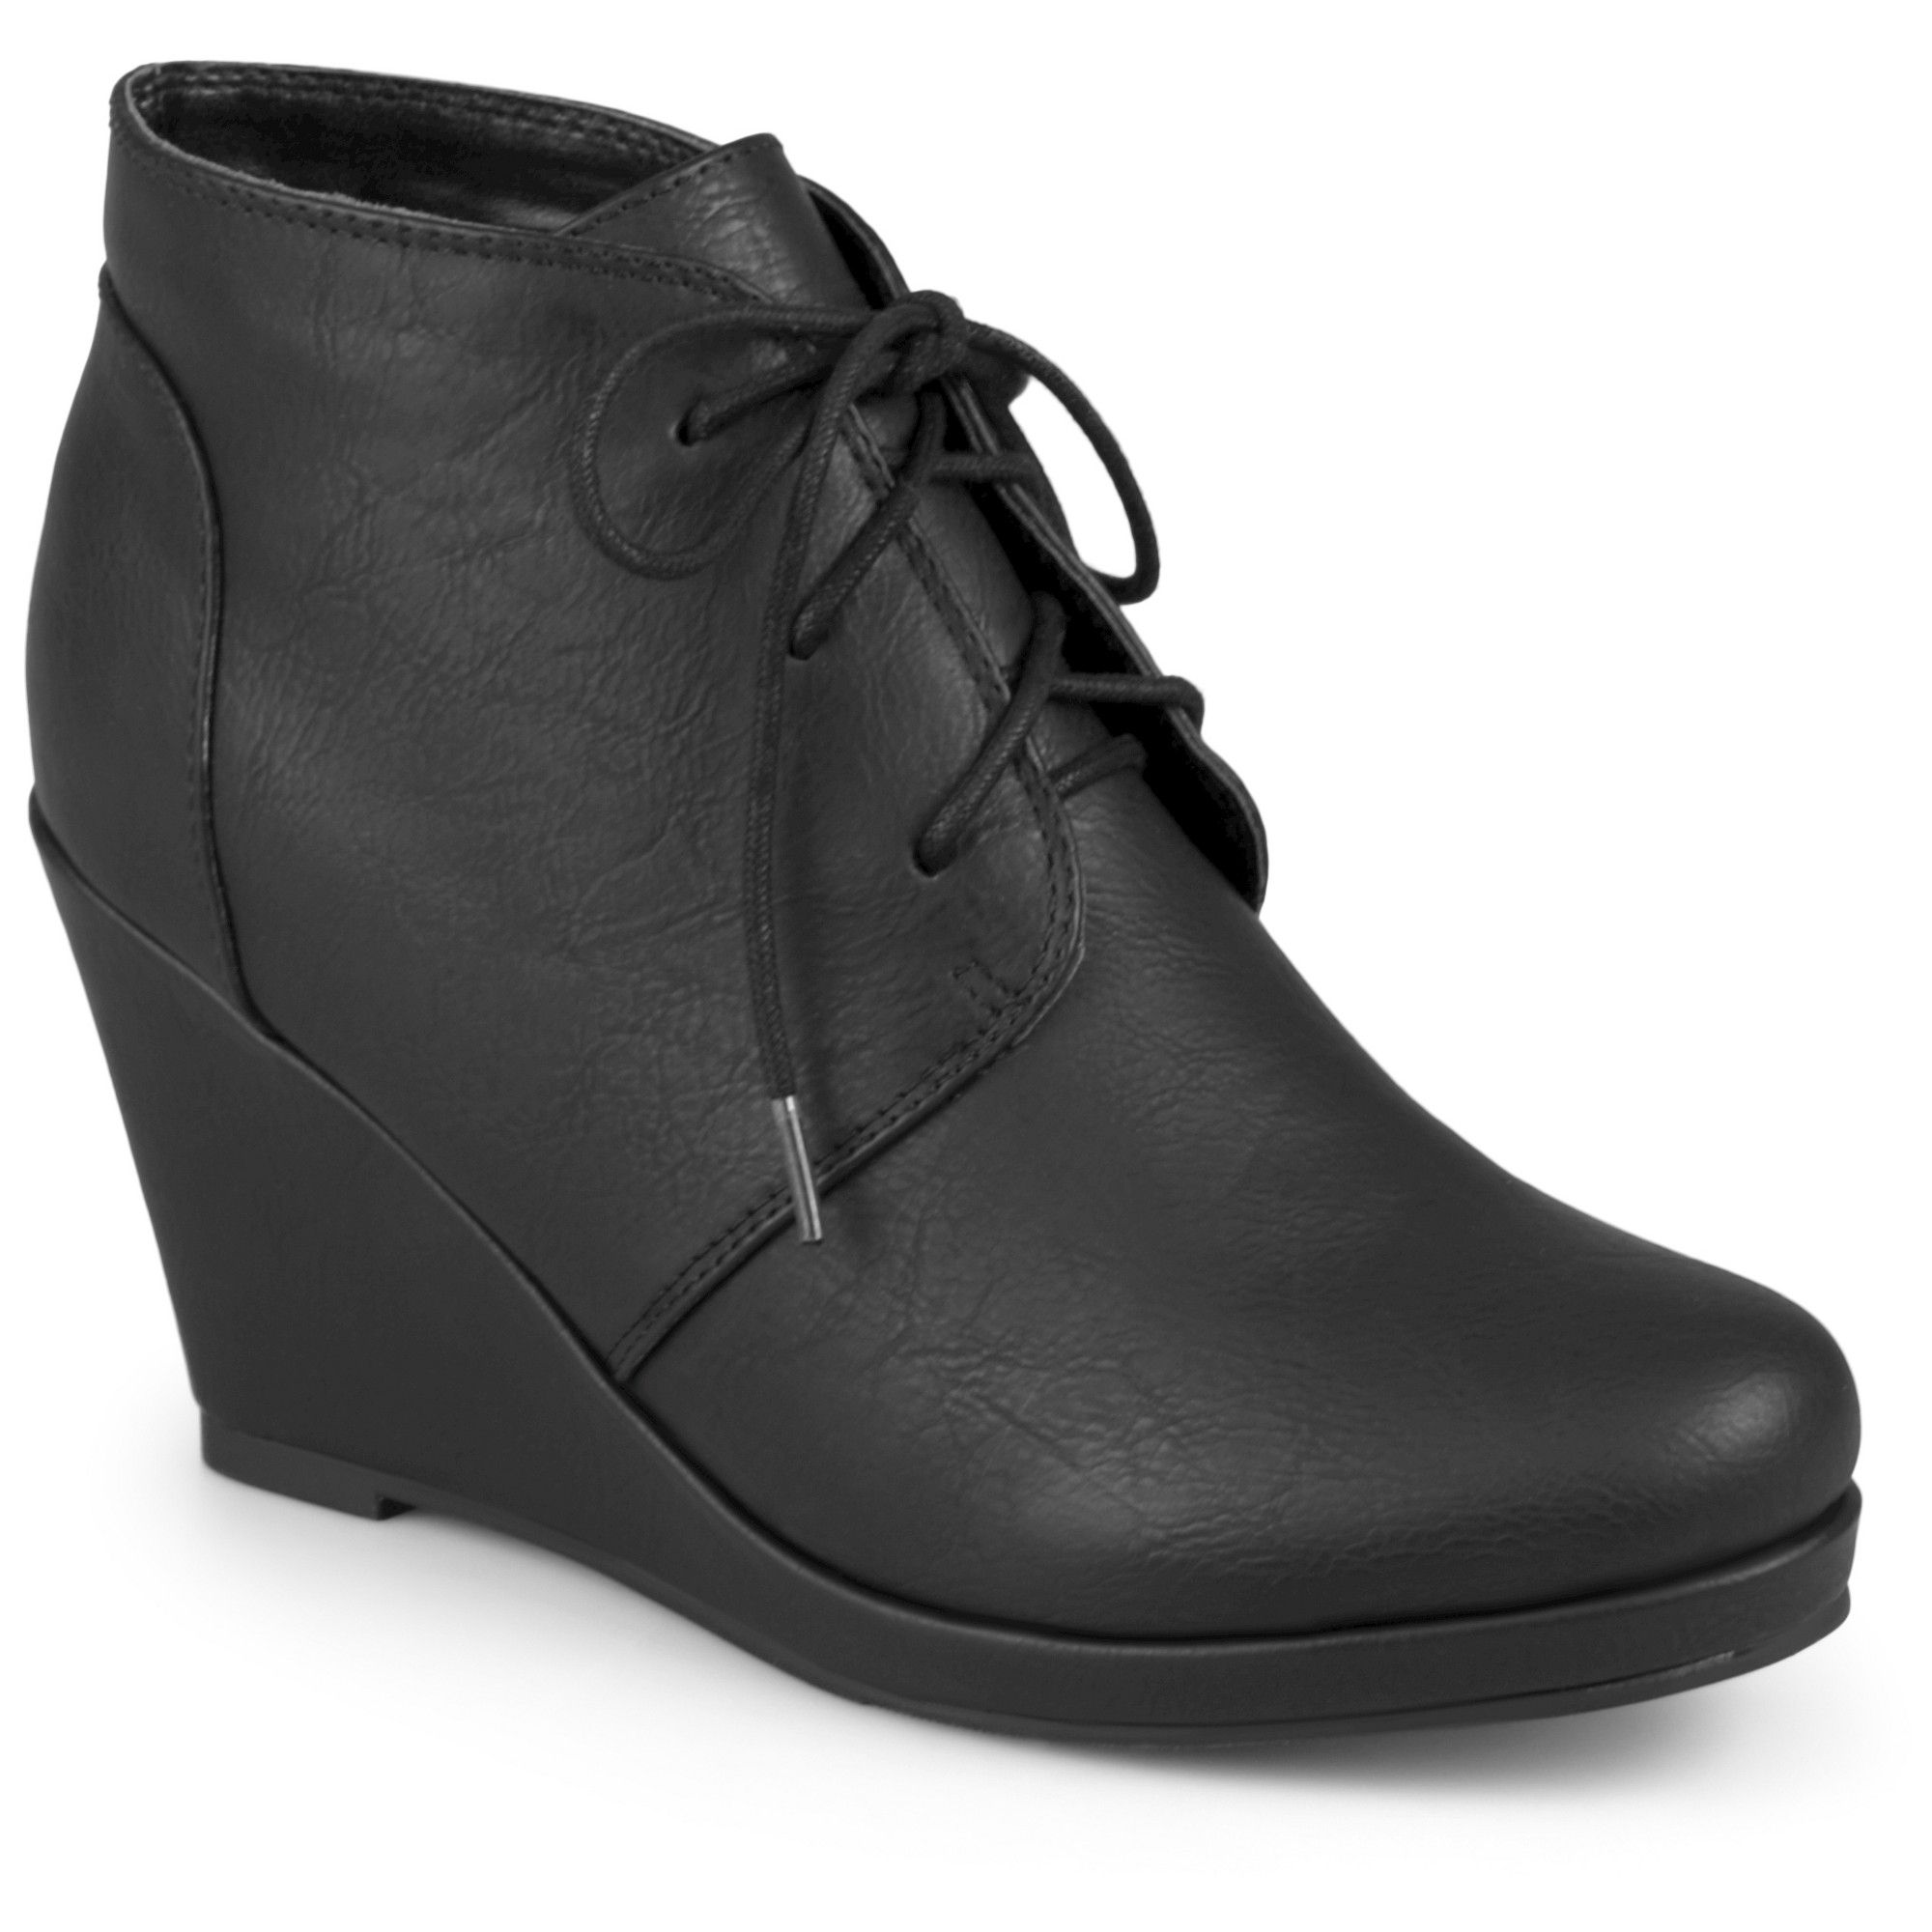 4ccc9681455d Women s Journee Collection Gentry Lace Up Vegan Wedge Booties ...